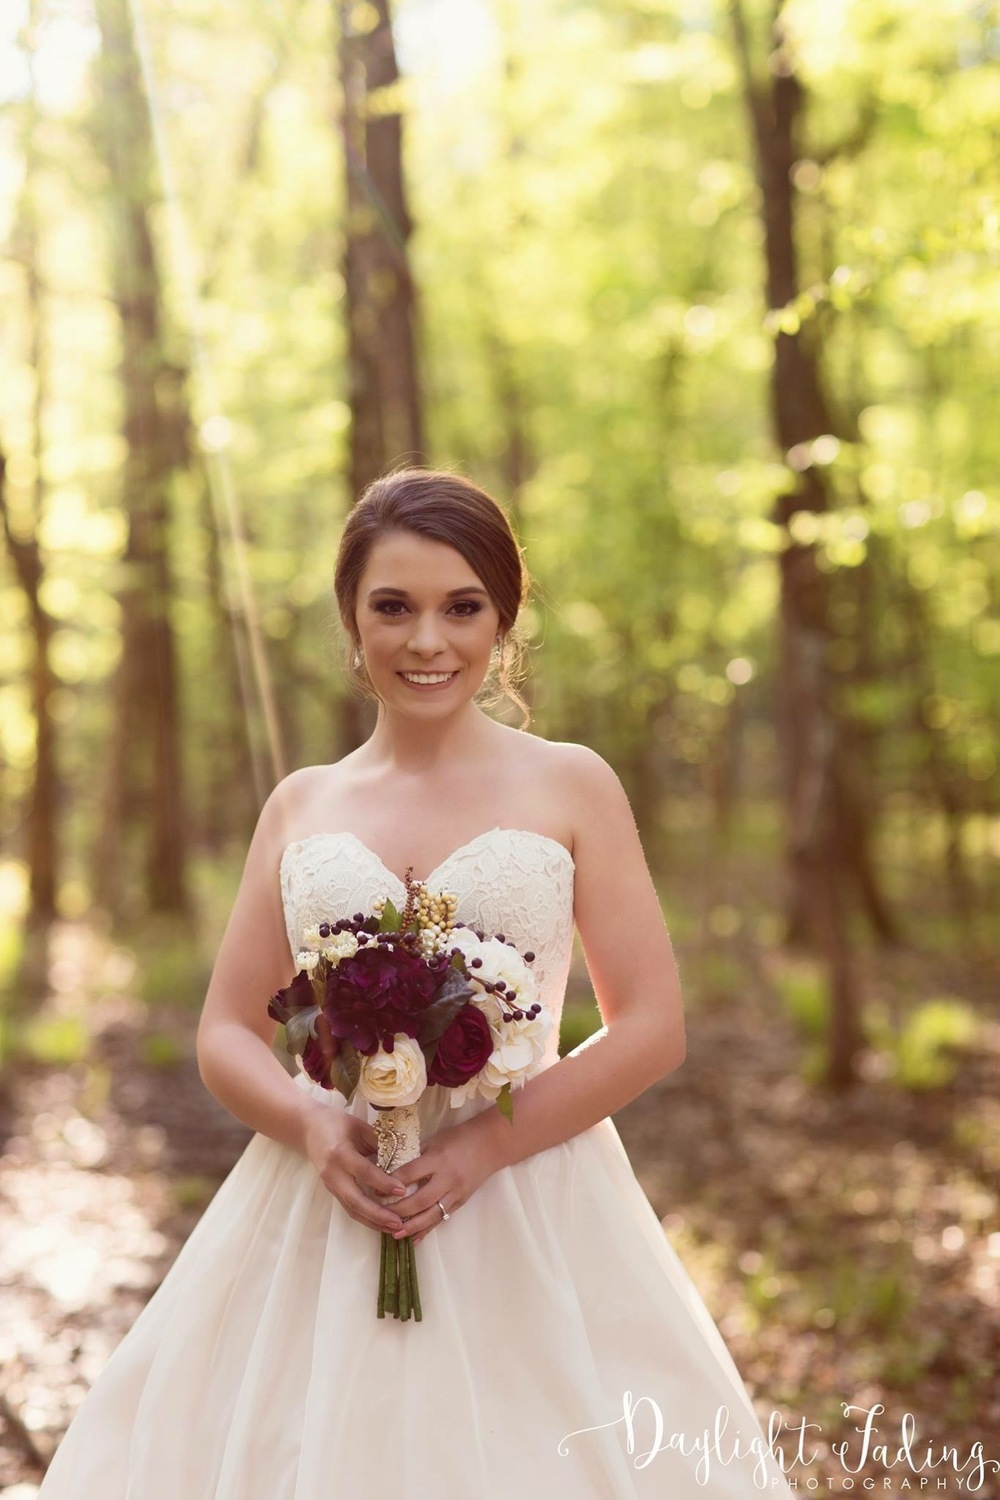 Kristi's Bridal Portraits at Rock Chapel in Carmel, Louisiana - daylightfadingphotography.com